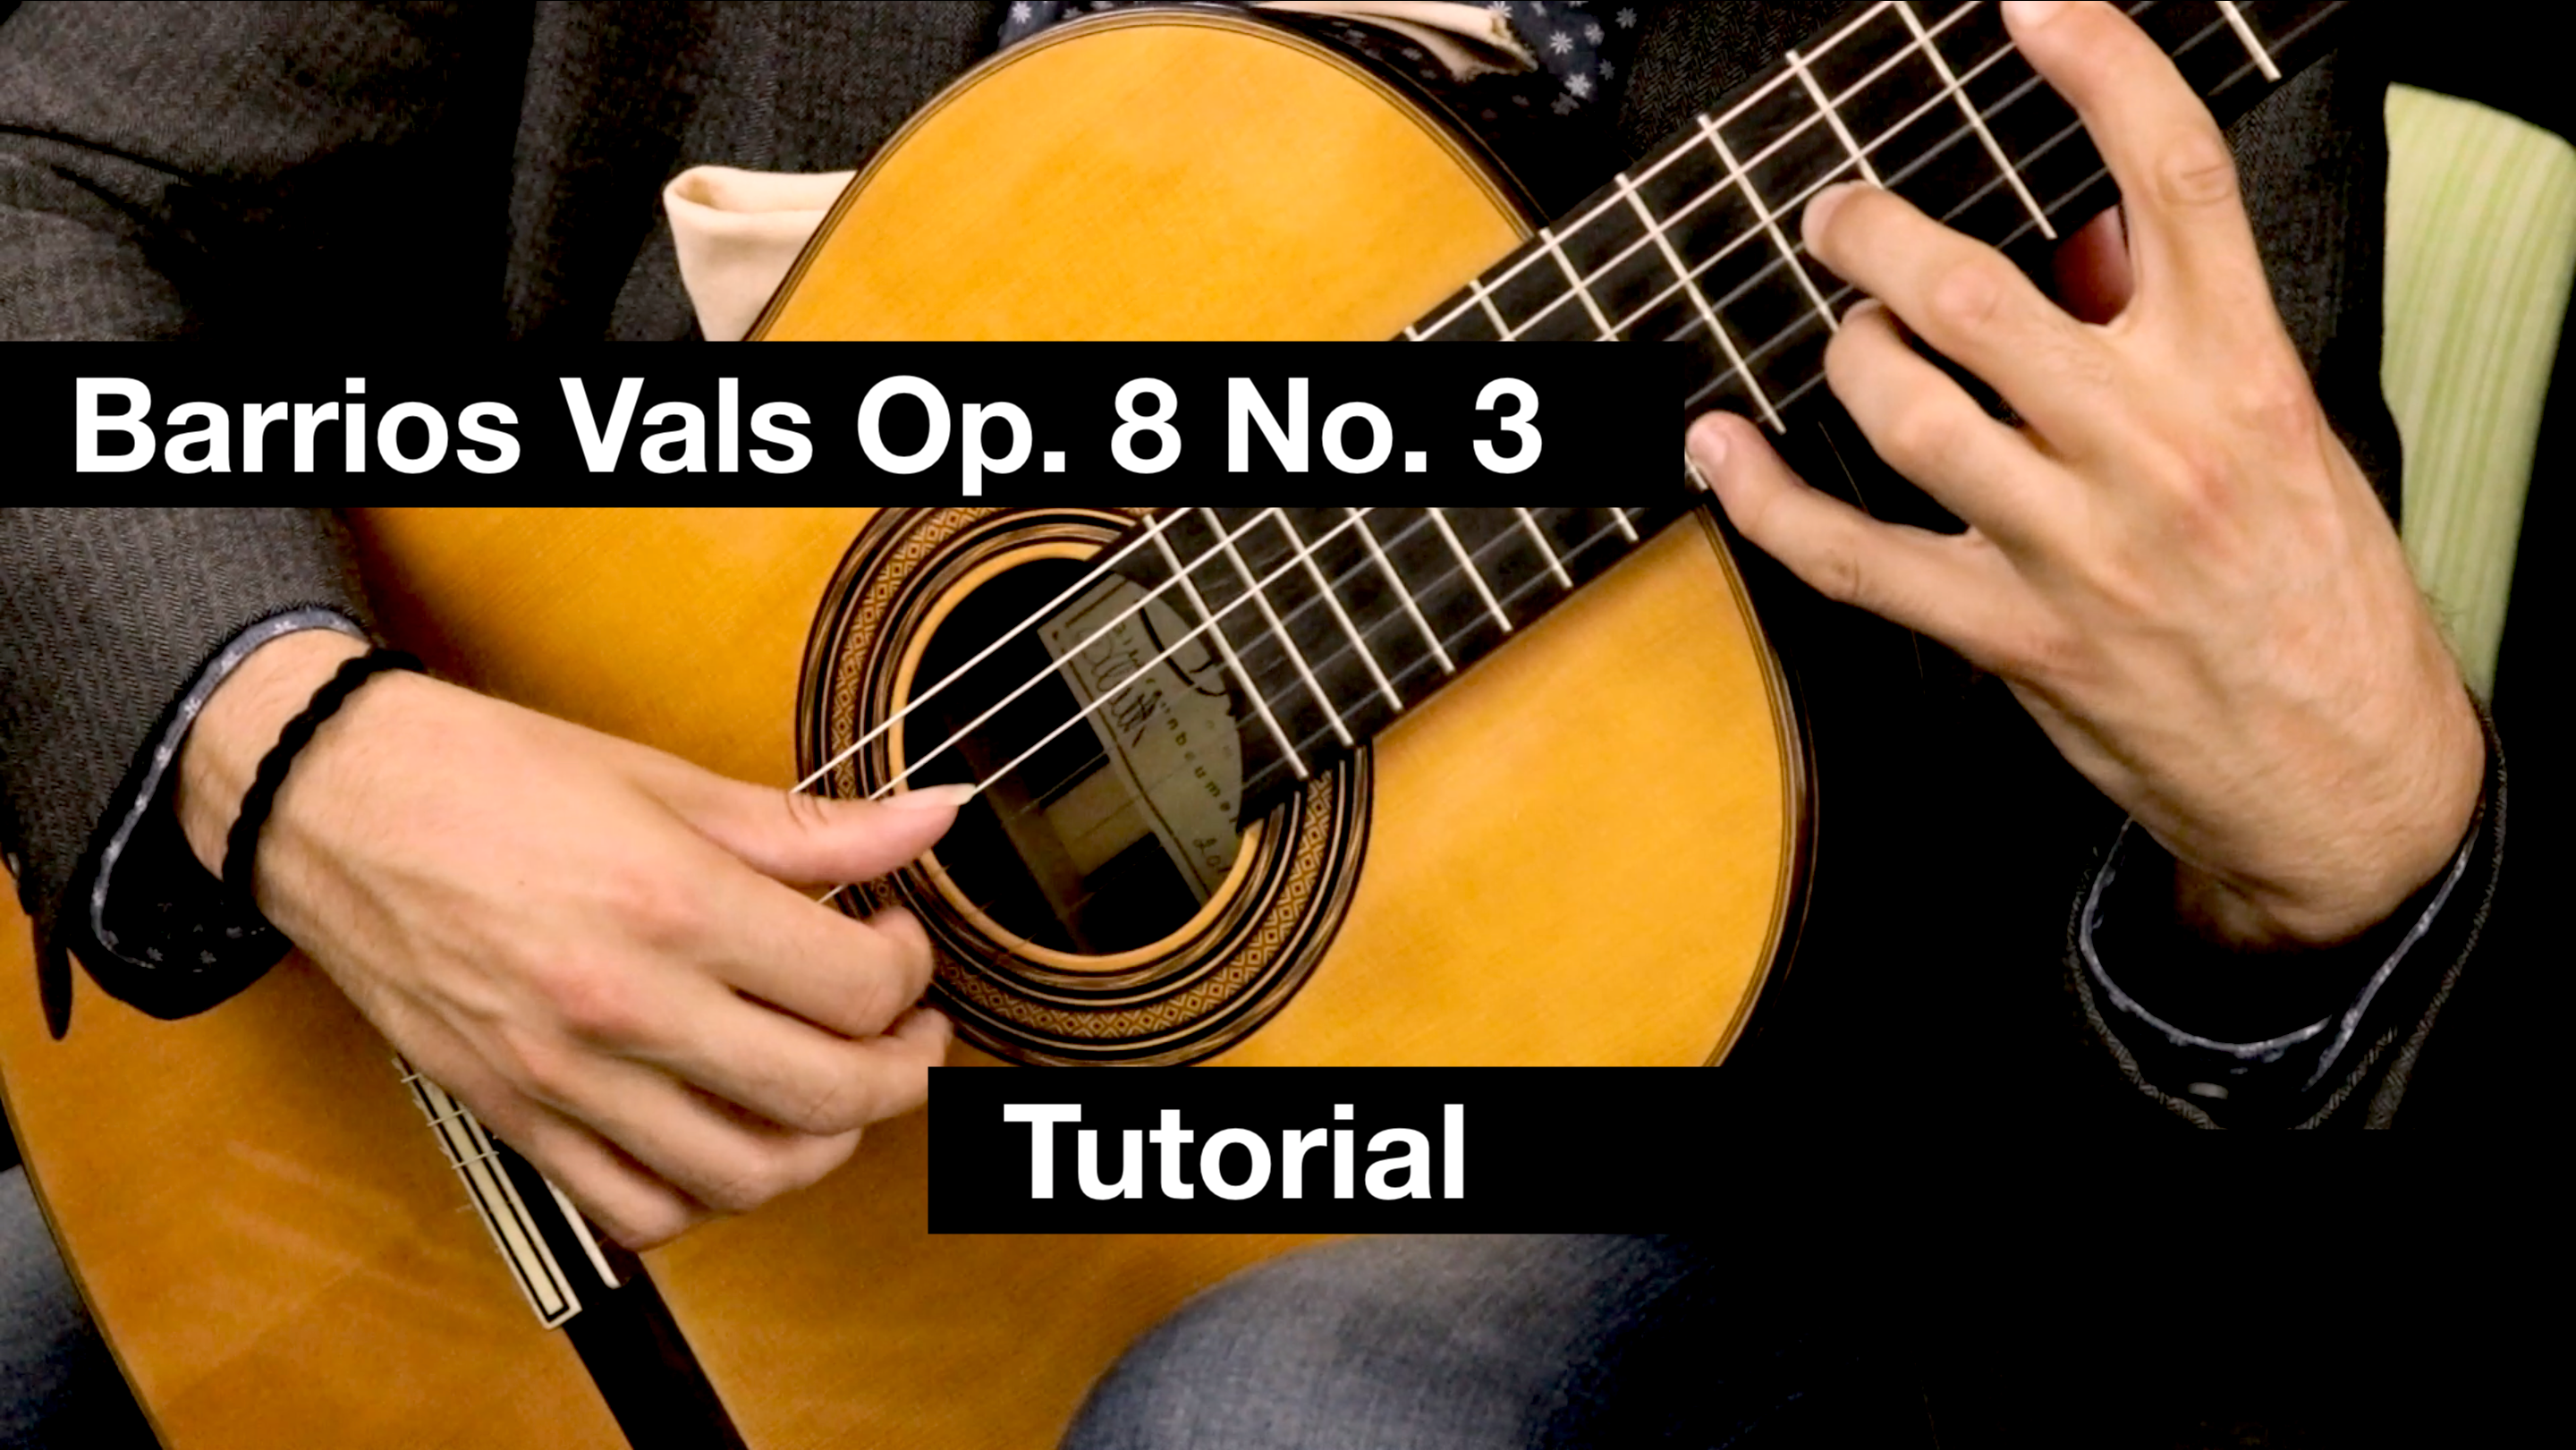 Data 2fimages 2fgzpy7bislsf1pifrvmtl eliteguitarist 20learn 20vals 20op. 208 20no. 203 20tutorial